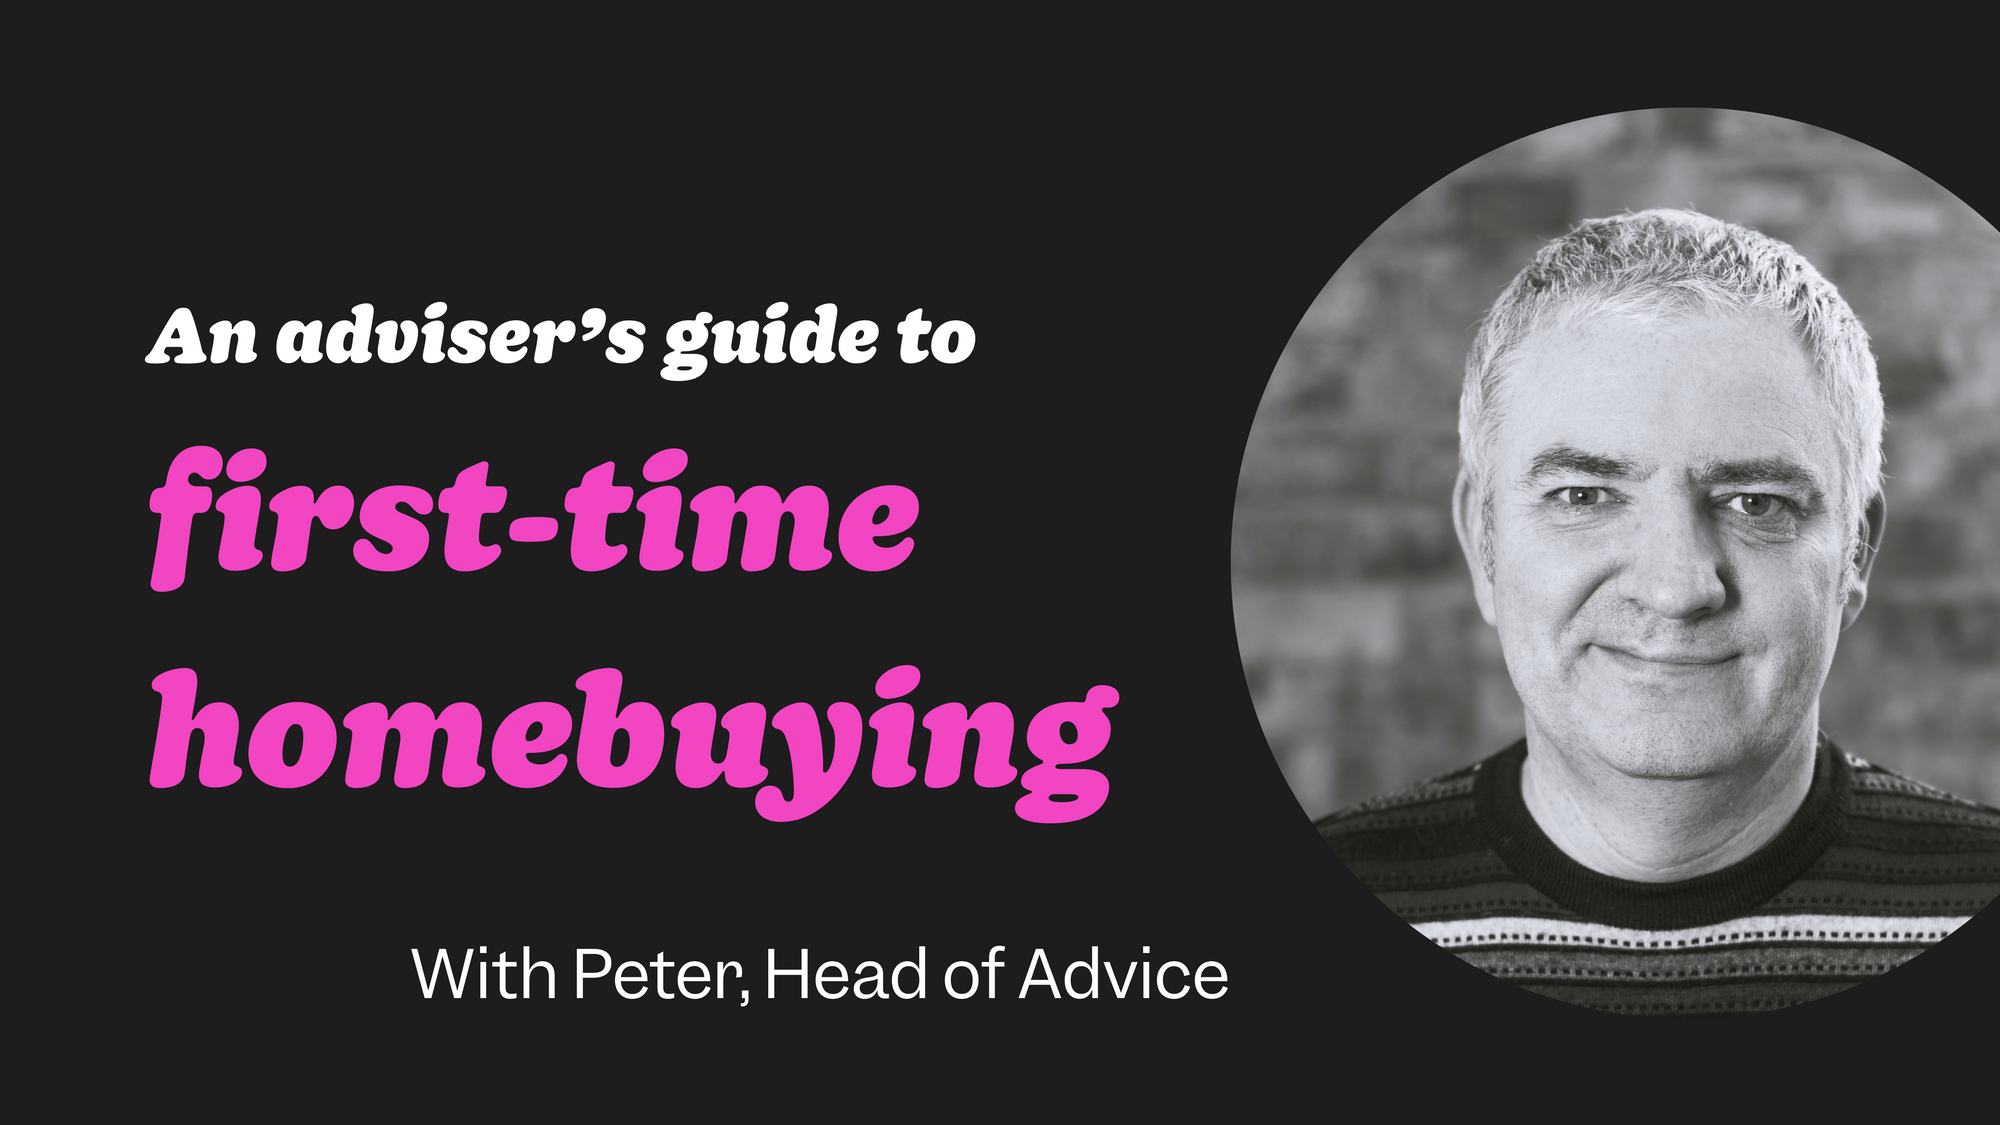 An adviser's guide to first-time homebuying